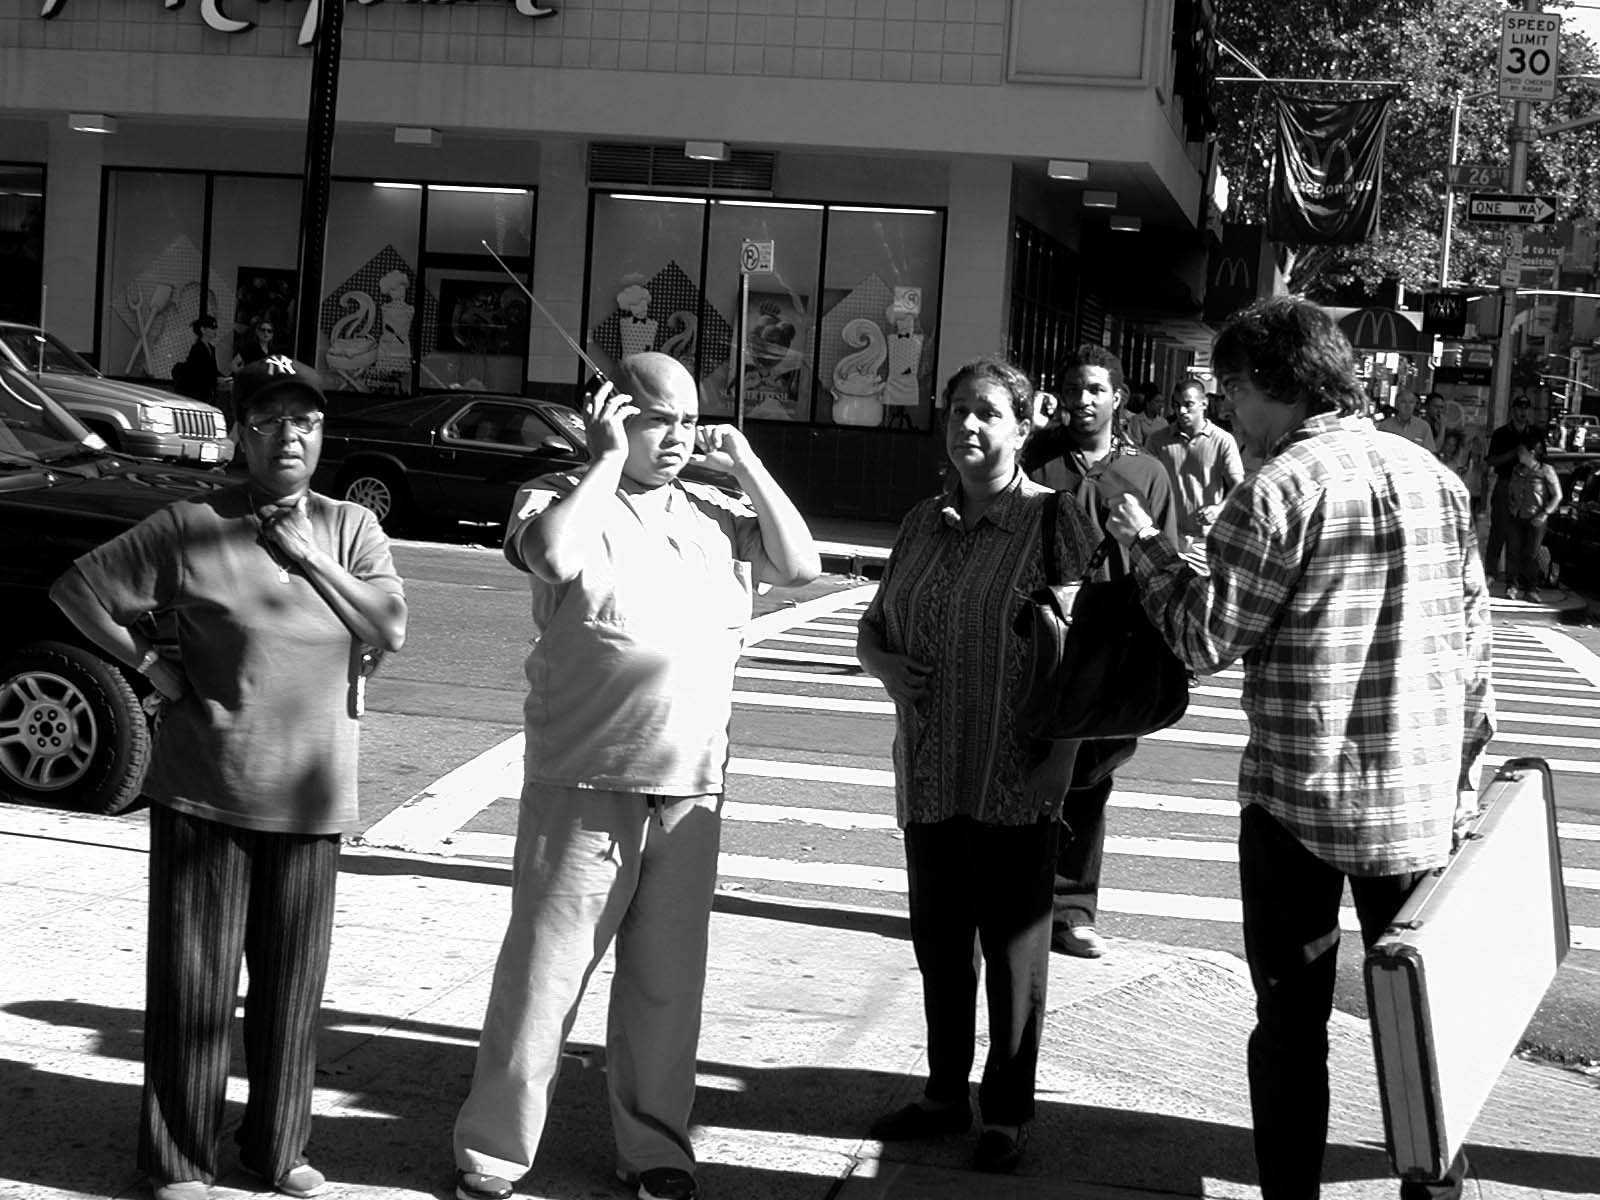 015 - 10AM - 8th Ave at 26th St. - onlookers and a man yelling